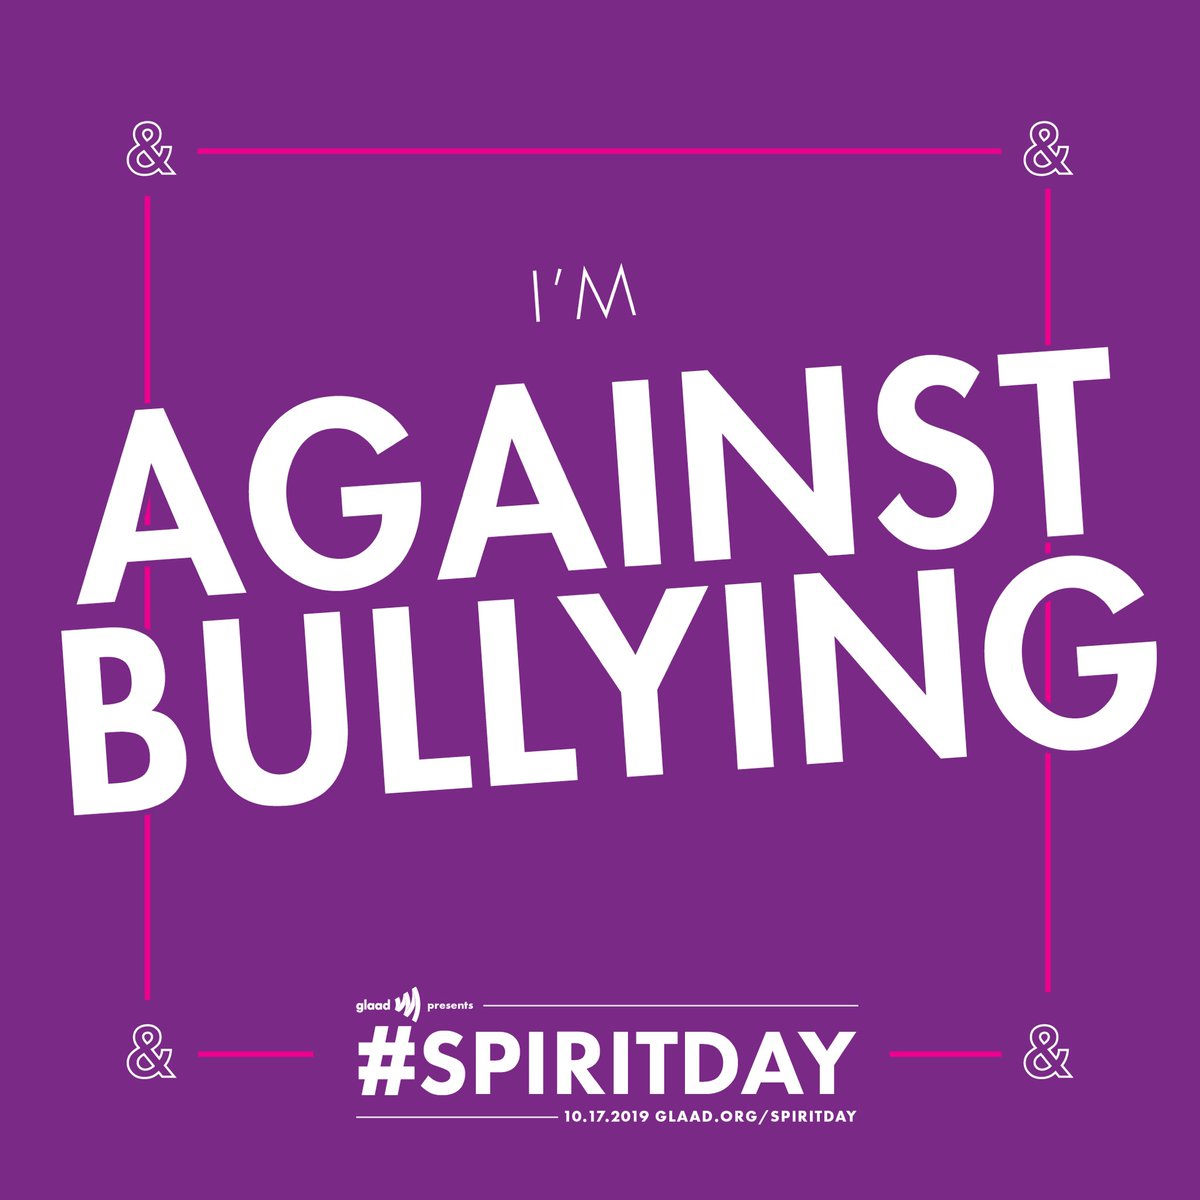 Today is #SpiritDay! Join me and @GLAAD to take a stand against bullying.  Show your support by taking the Spirit Day Pledge at https://t.co/J8lT6jDwRi https://t.co/3vbZYF74Pc